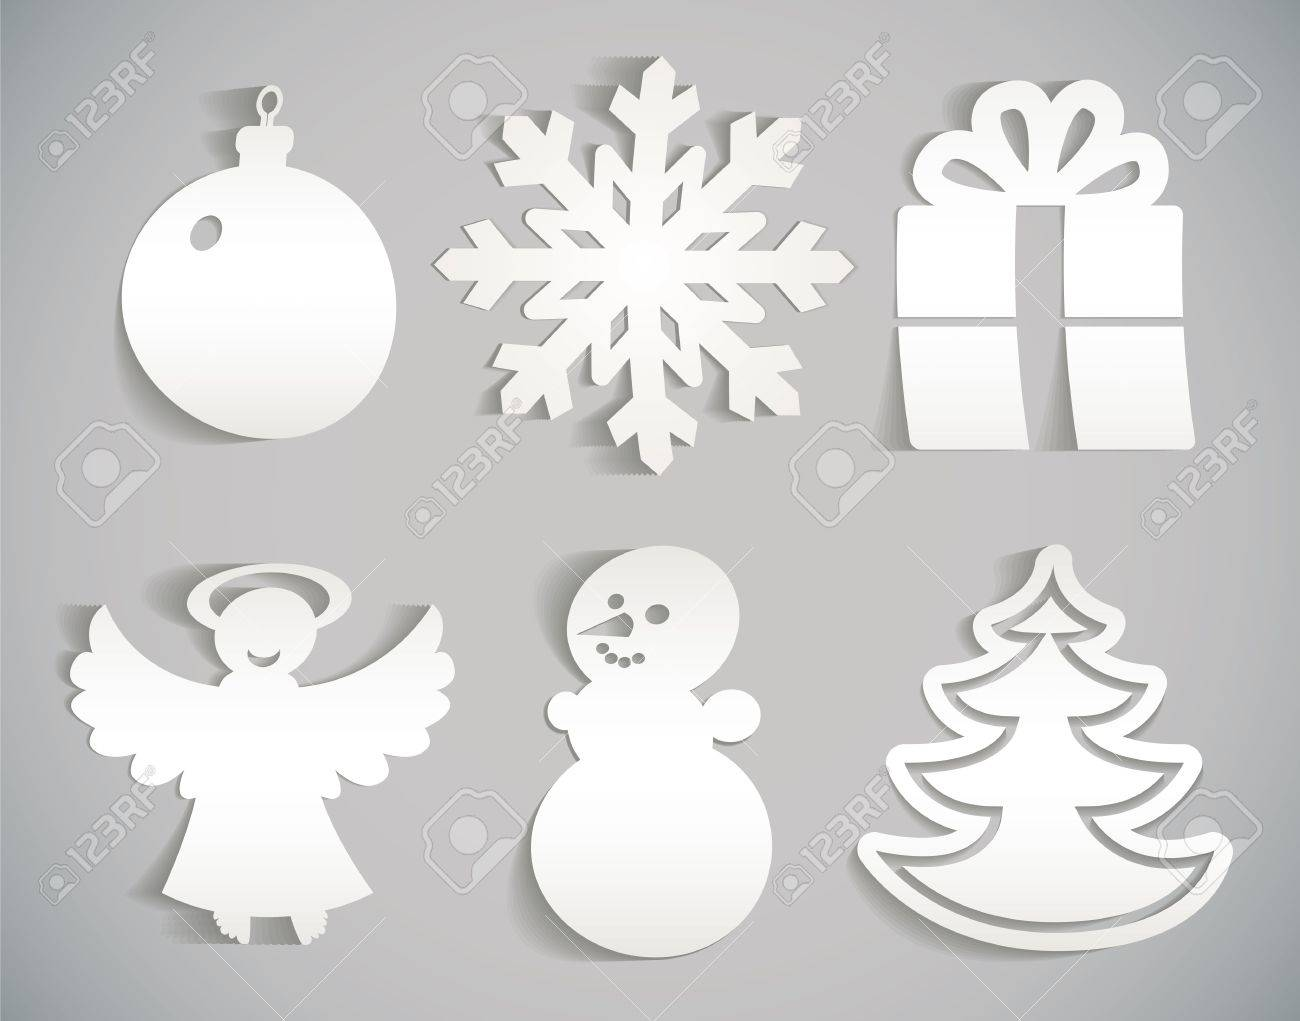 Christmas icon cut from paper illustration Stock Vector - 16907333